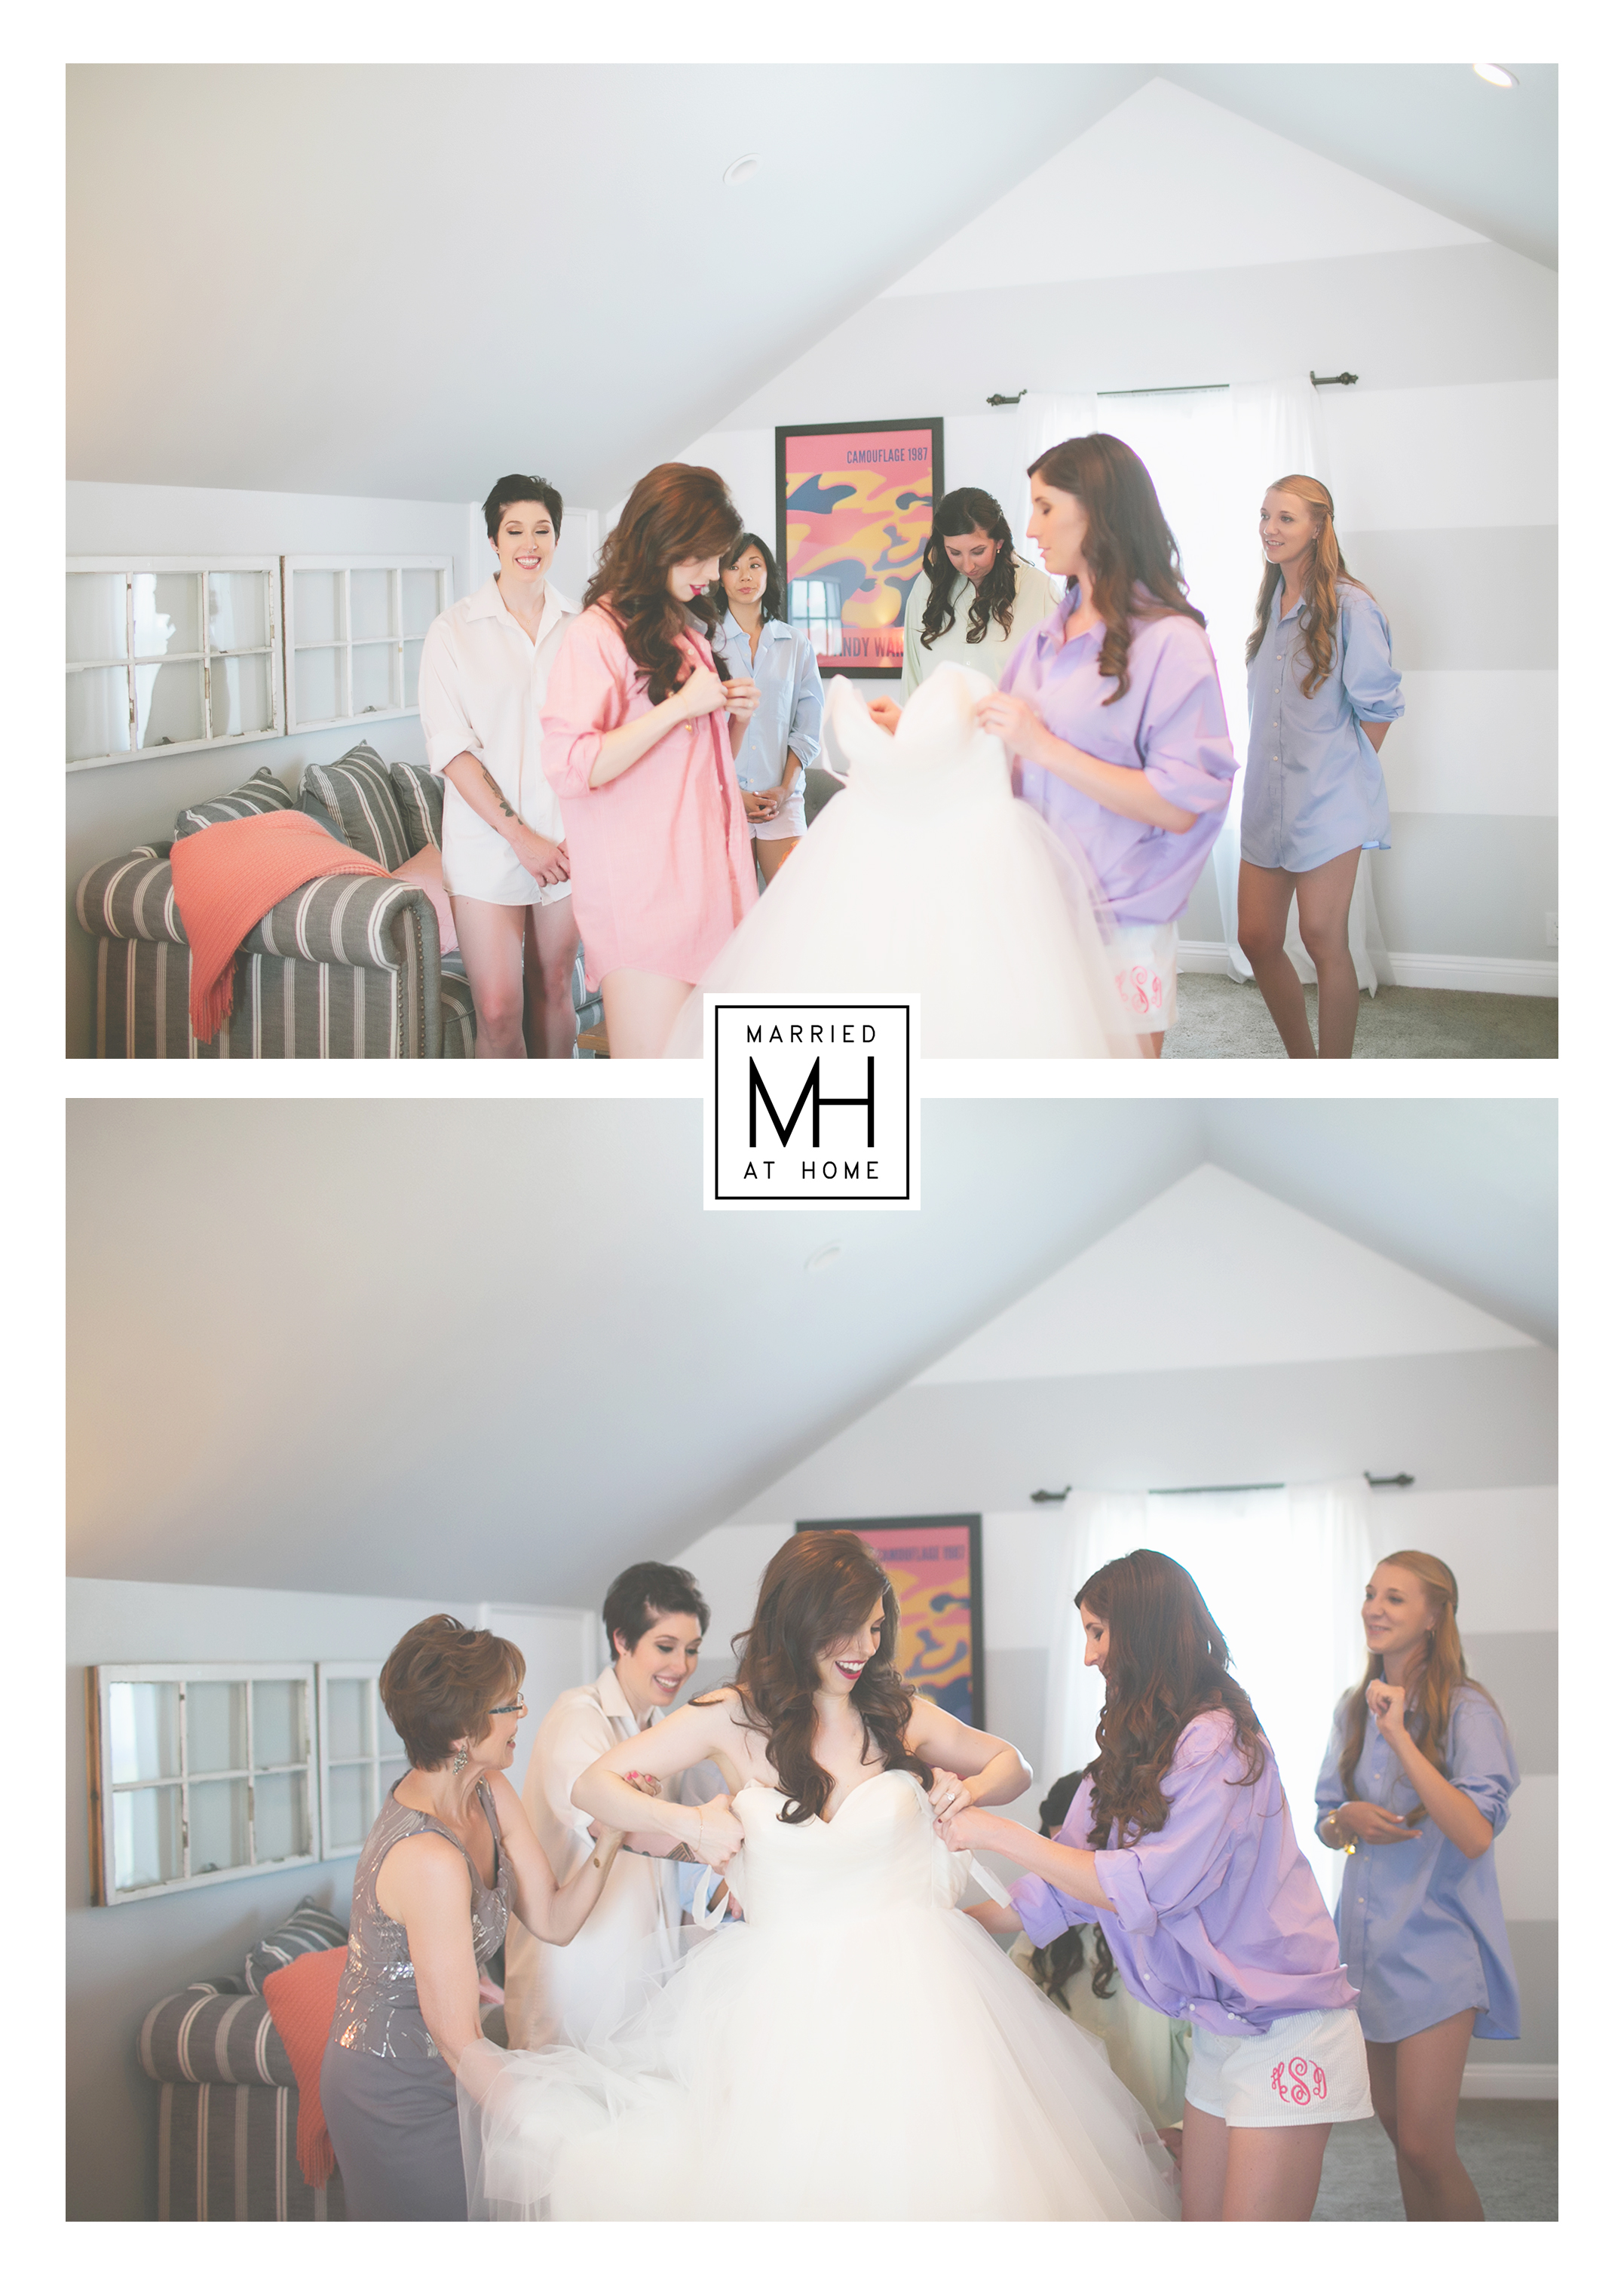 Getting Into the Dress | Married At Home